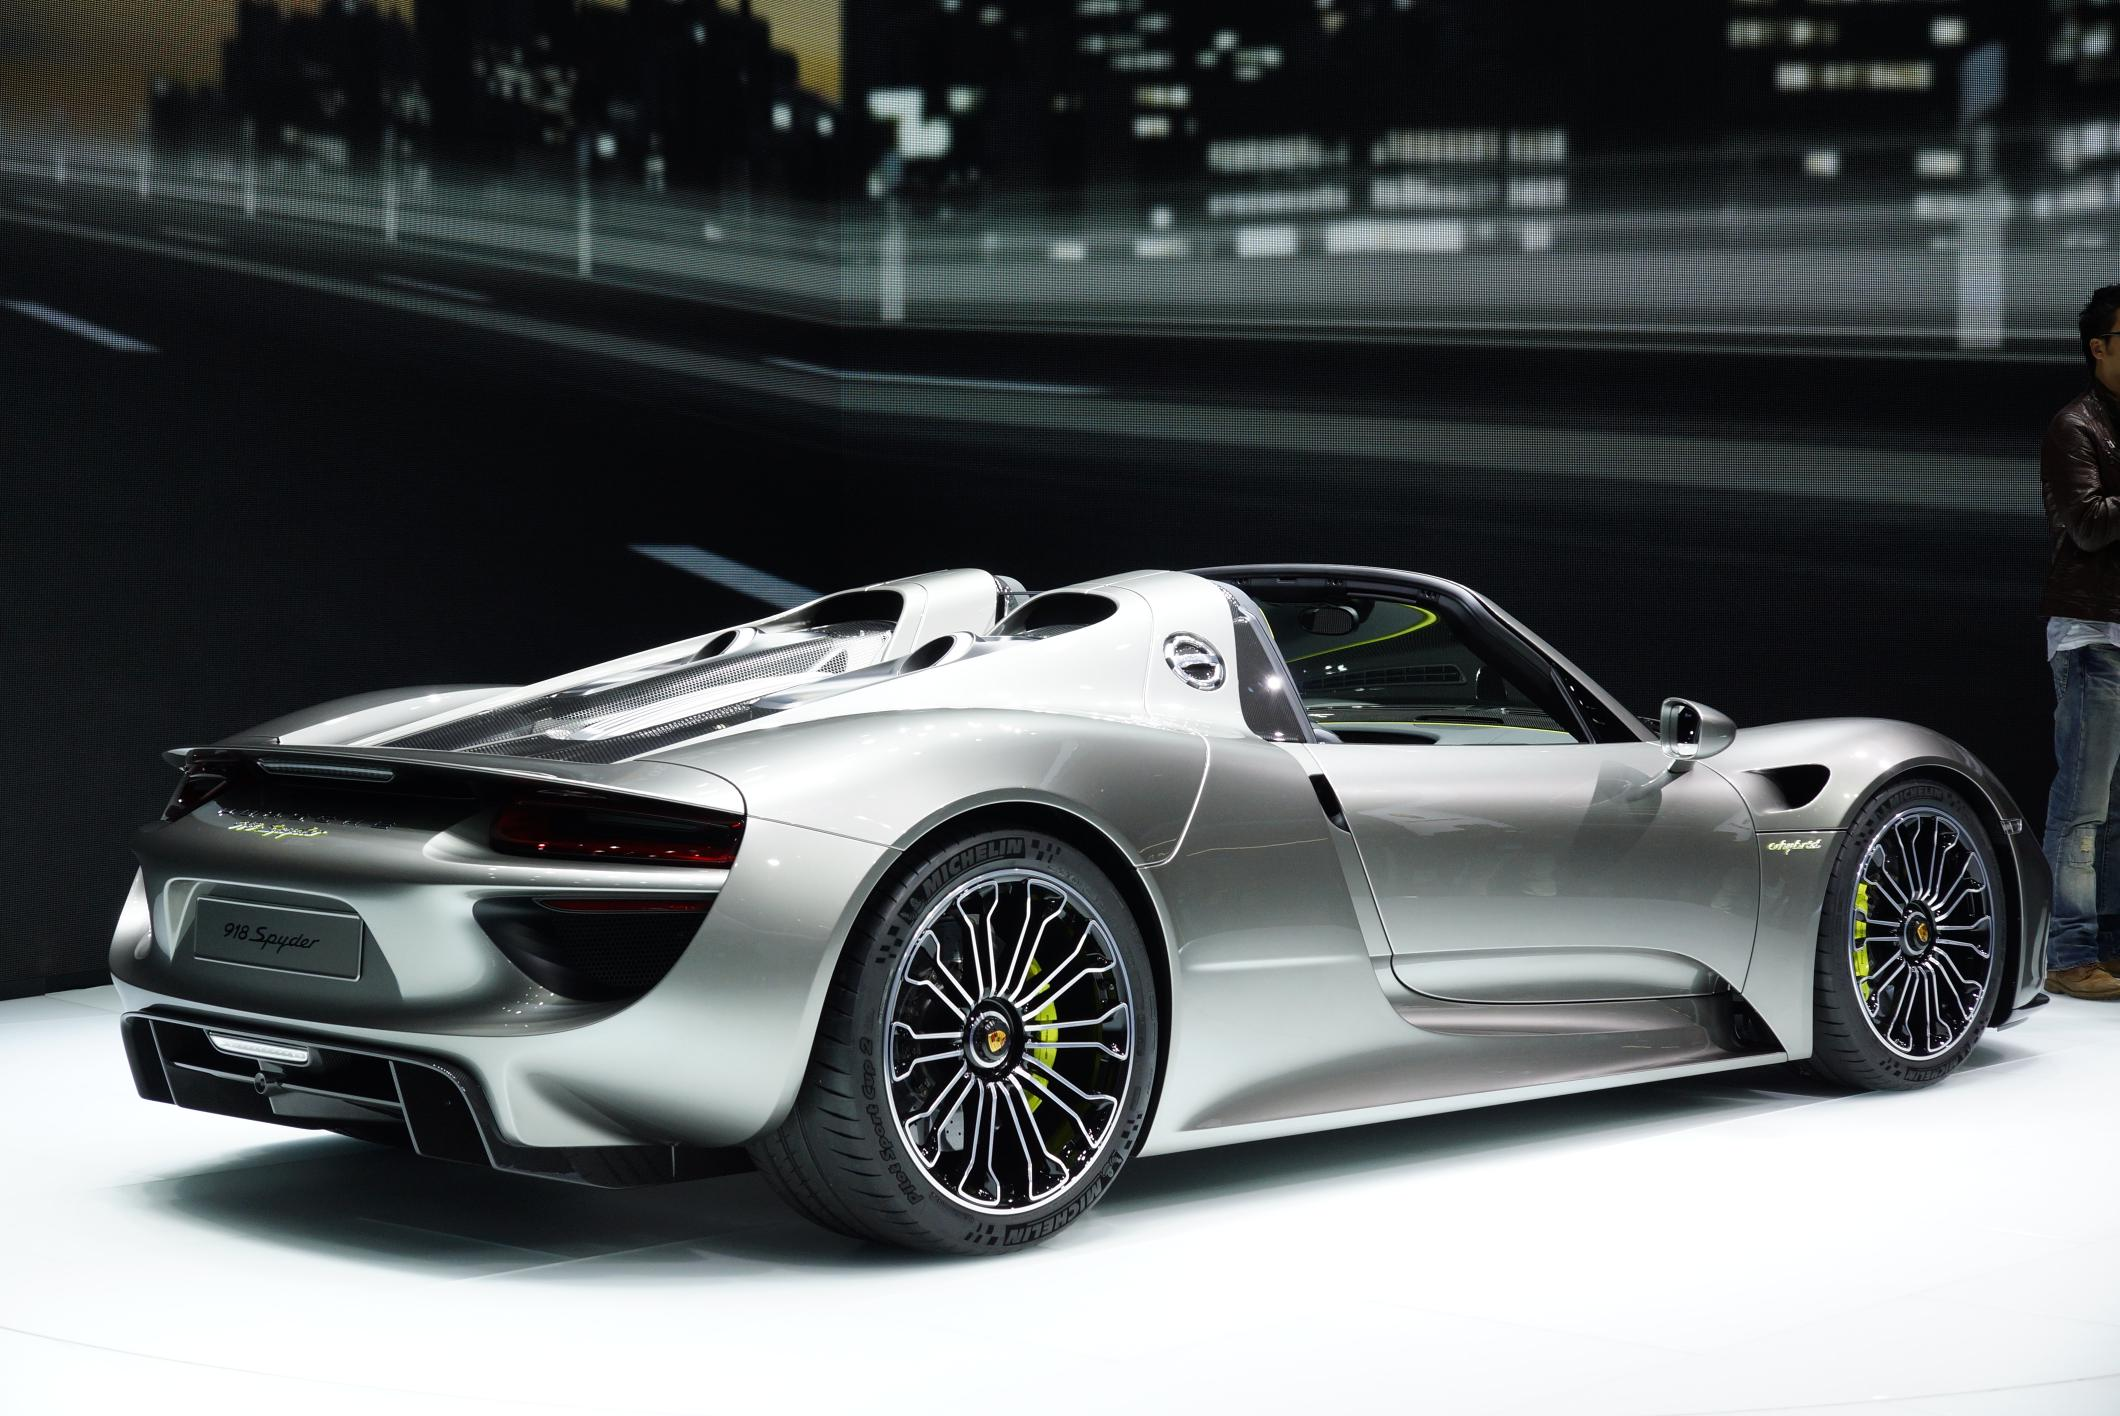 2016 2017 porsche 918 spyder luxury things. Black Bedroom Furniture Sets. Home Design Ideas